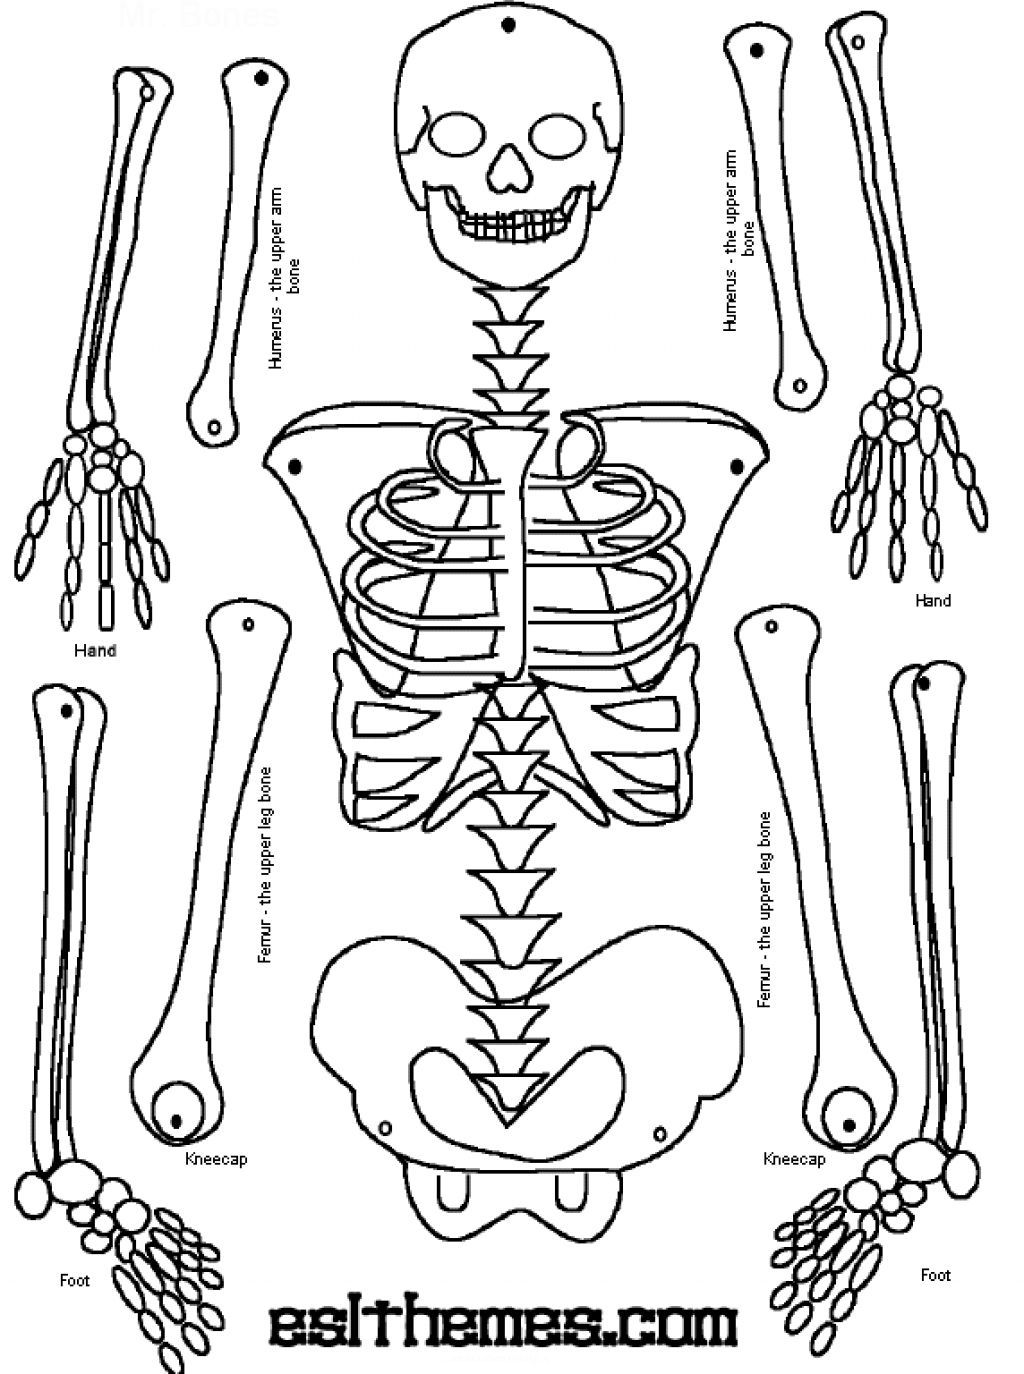 skeleton puzzle printable | print it | pinterest | skeletons and, Skeleton